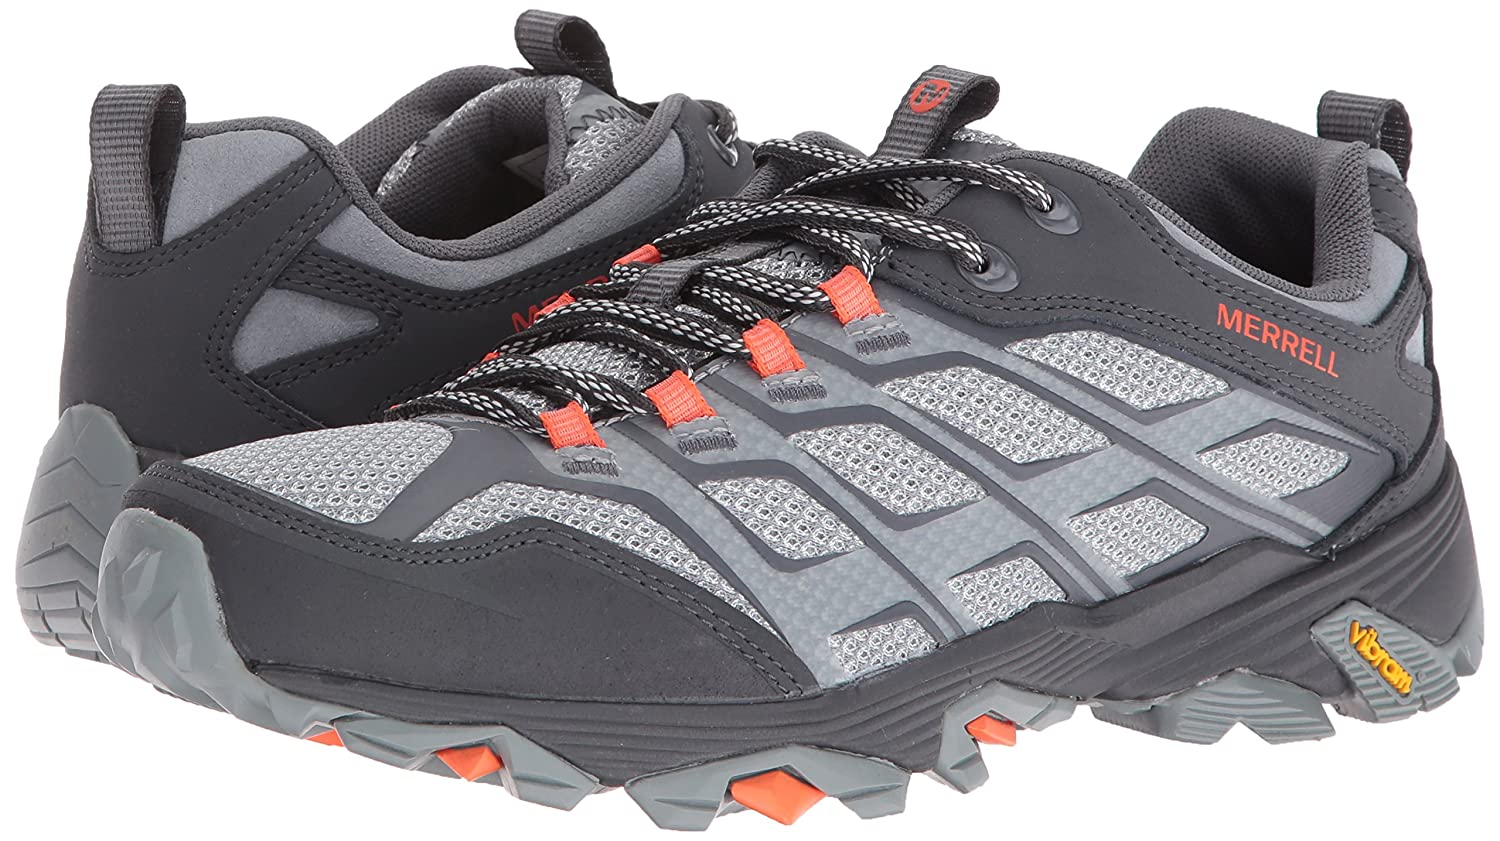 Merrell Women Grey/Orange Moab Fst Hiking Shoe, 10 D(M) US